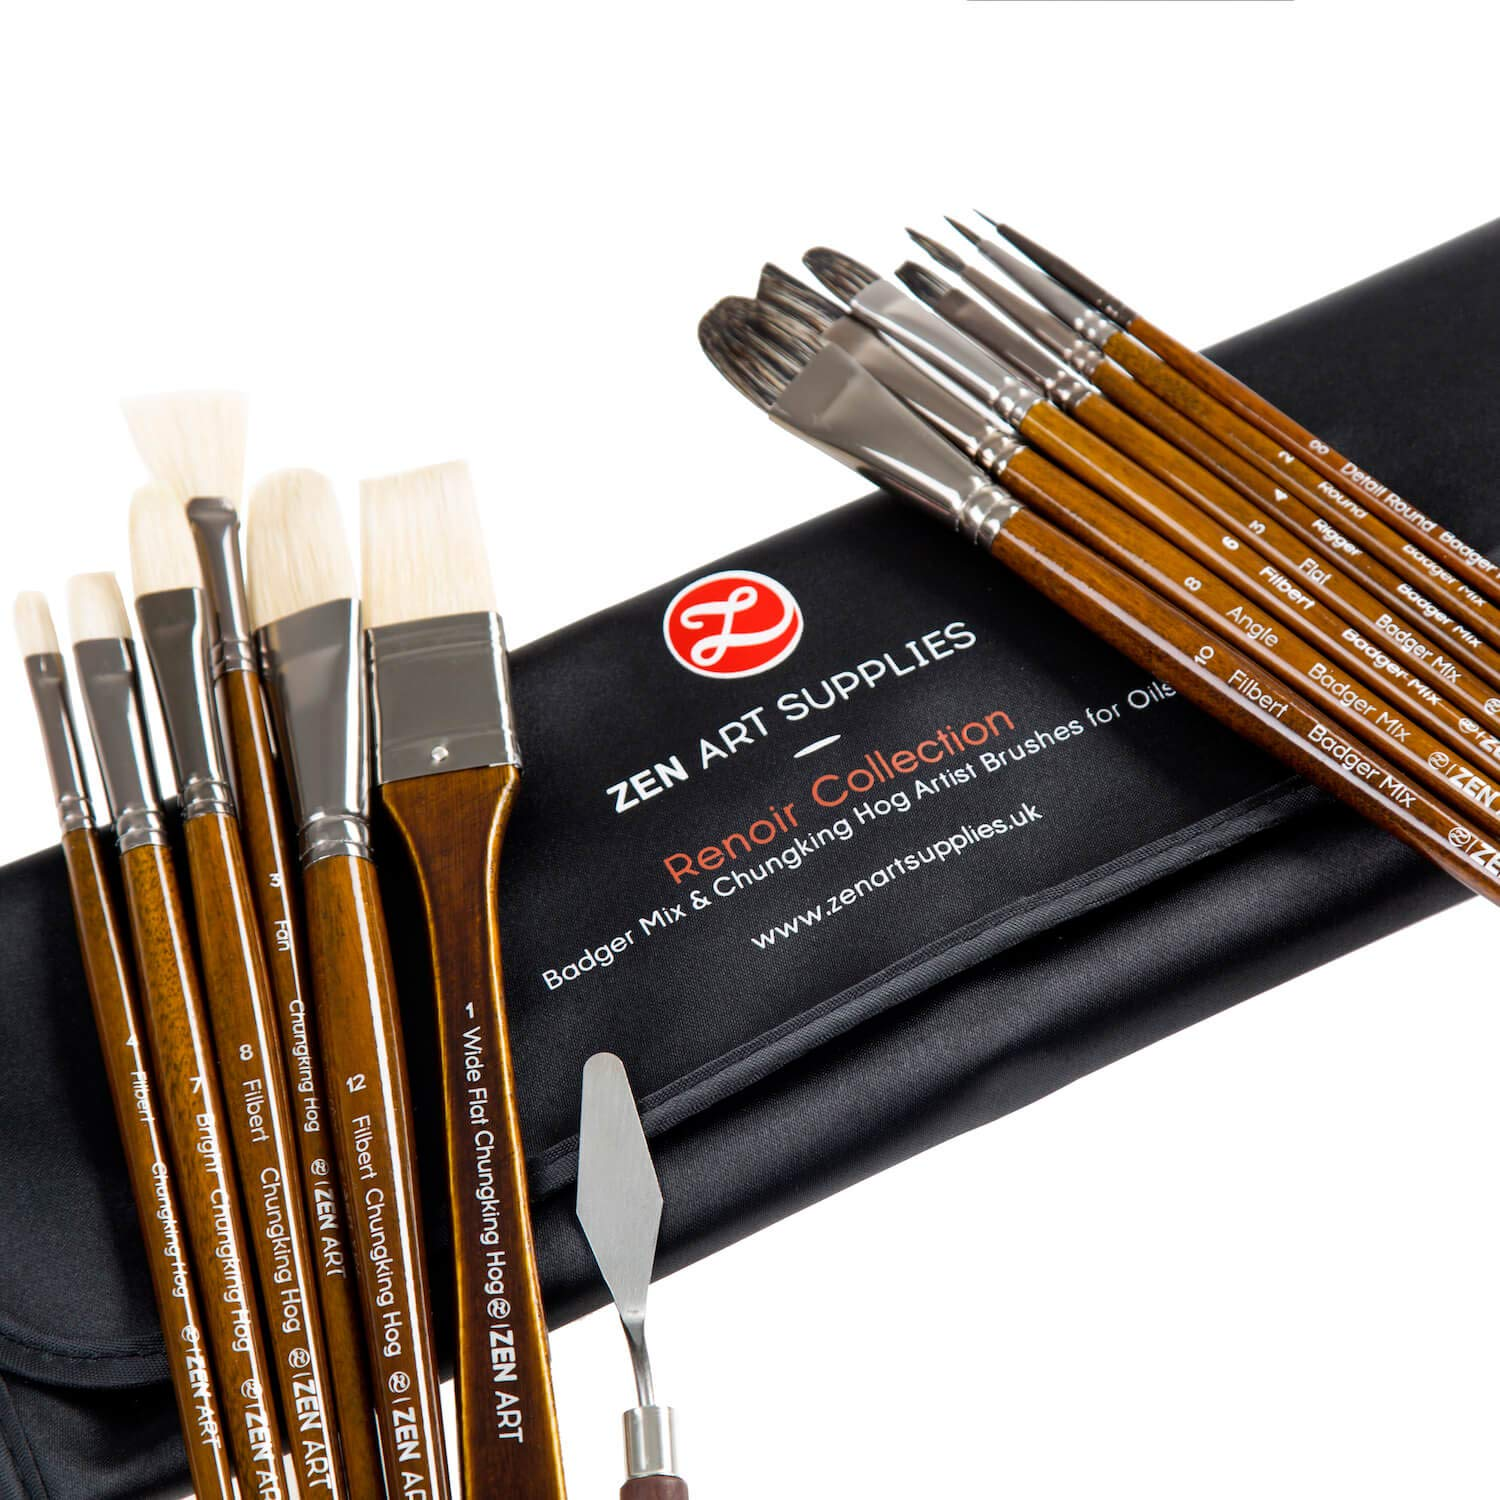 Professional Oil & Acrylics Artist Brushes - Long-lasting Badger/Japanese Synthetic blend, Chungking hog - Lacquered Birchwood Long Handles - Elegant Rollup Case - 14 pcs Renoir Collection by ZenArt ZenArt Supplies